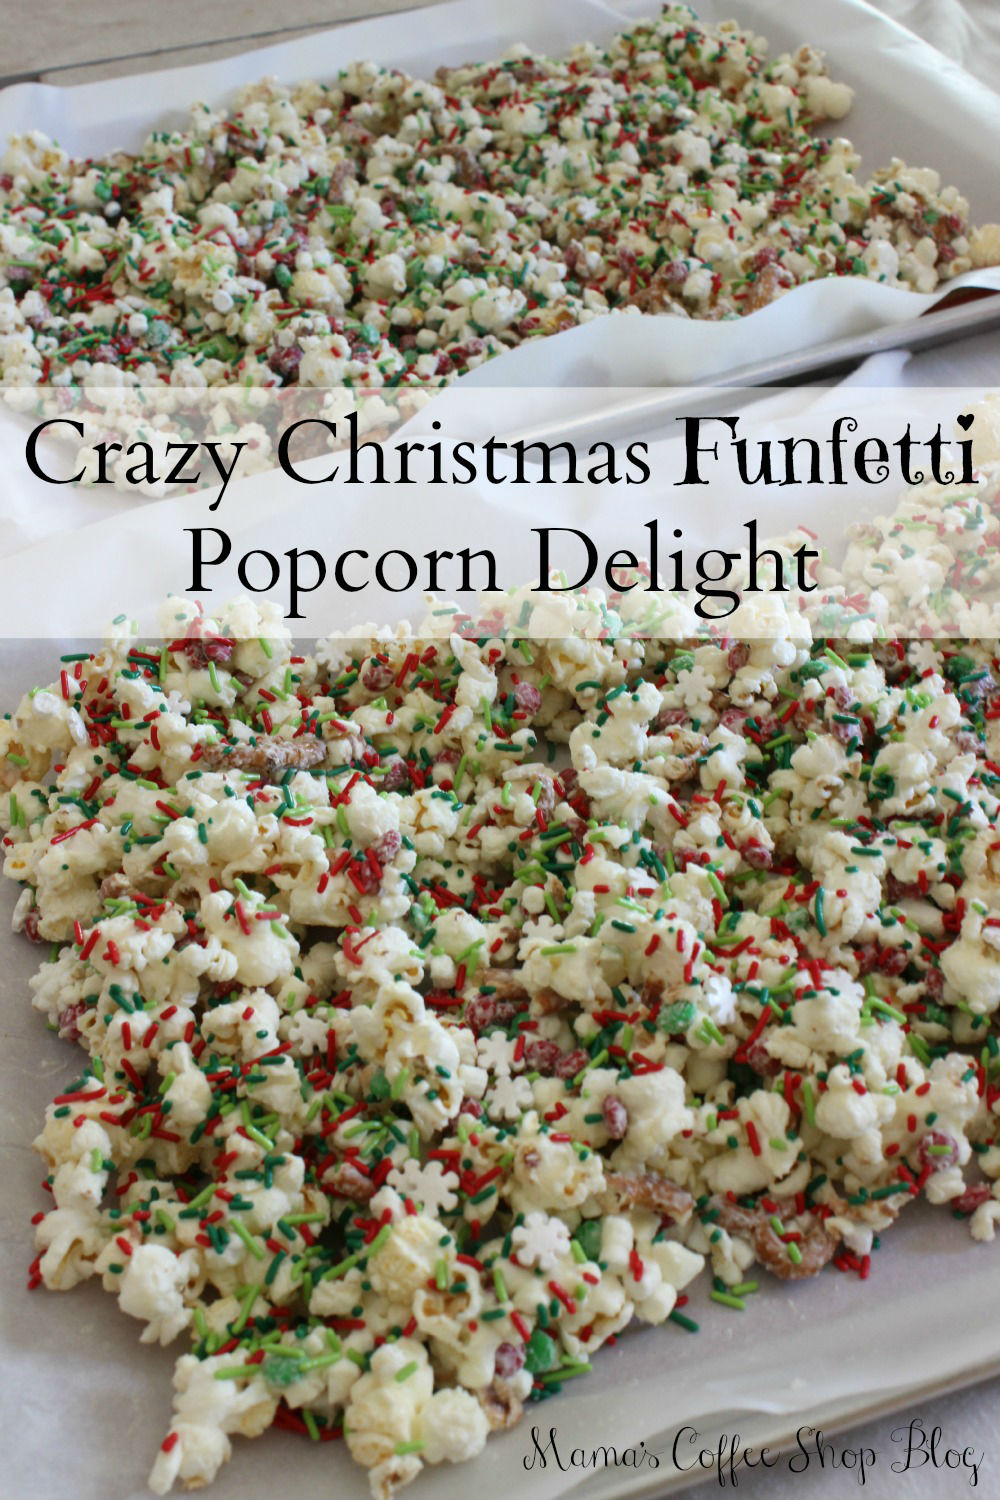 Tray full of Crazy Christmas Funfetti Popcorn